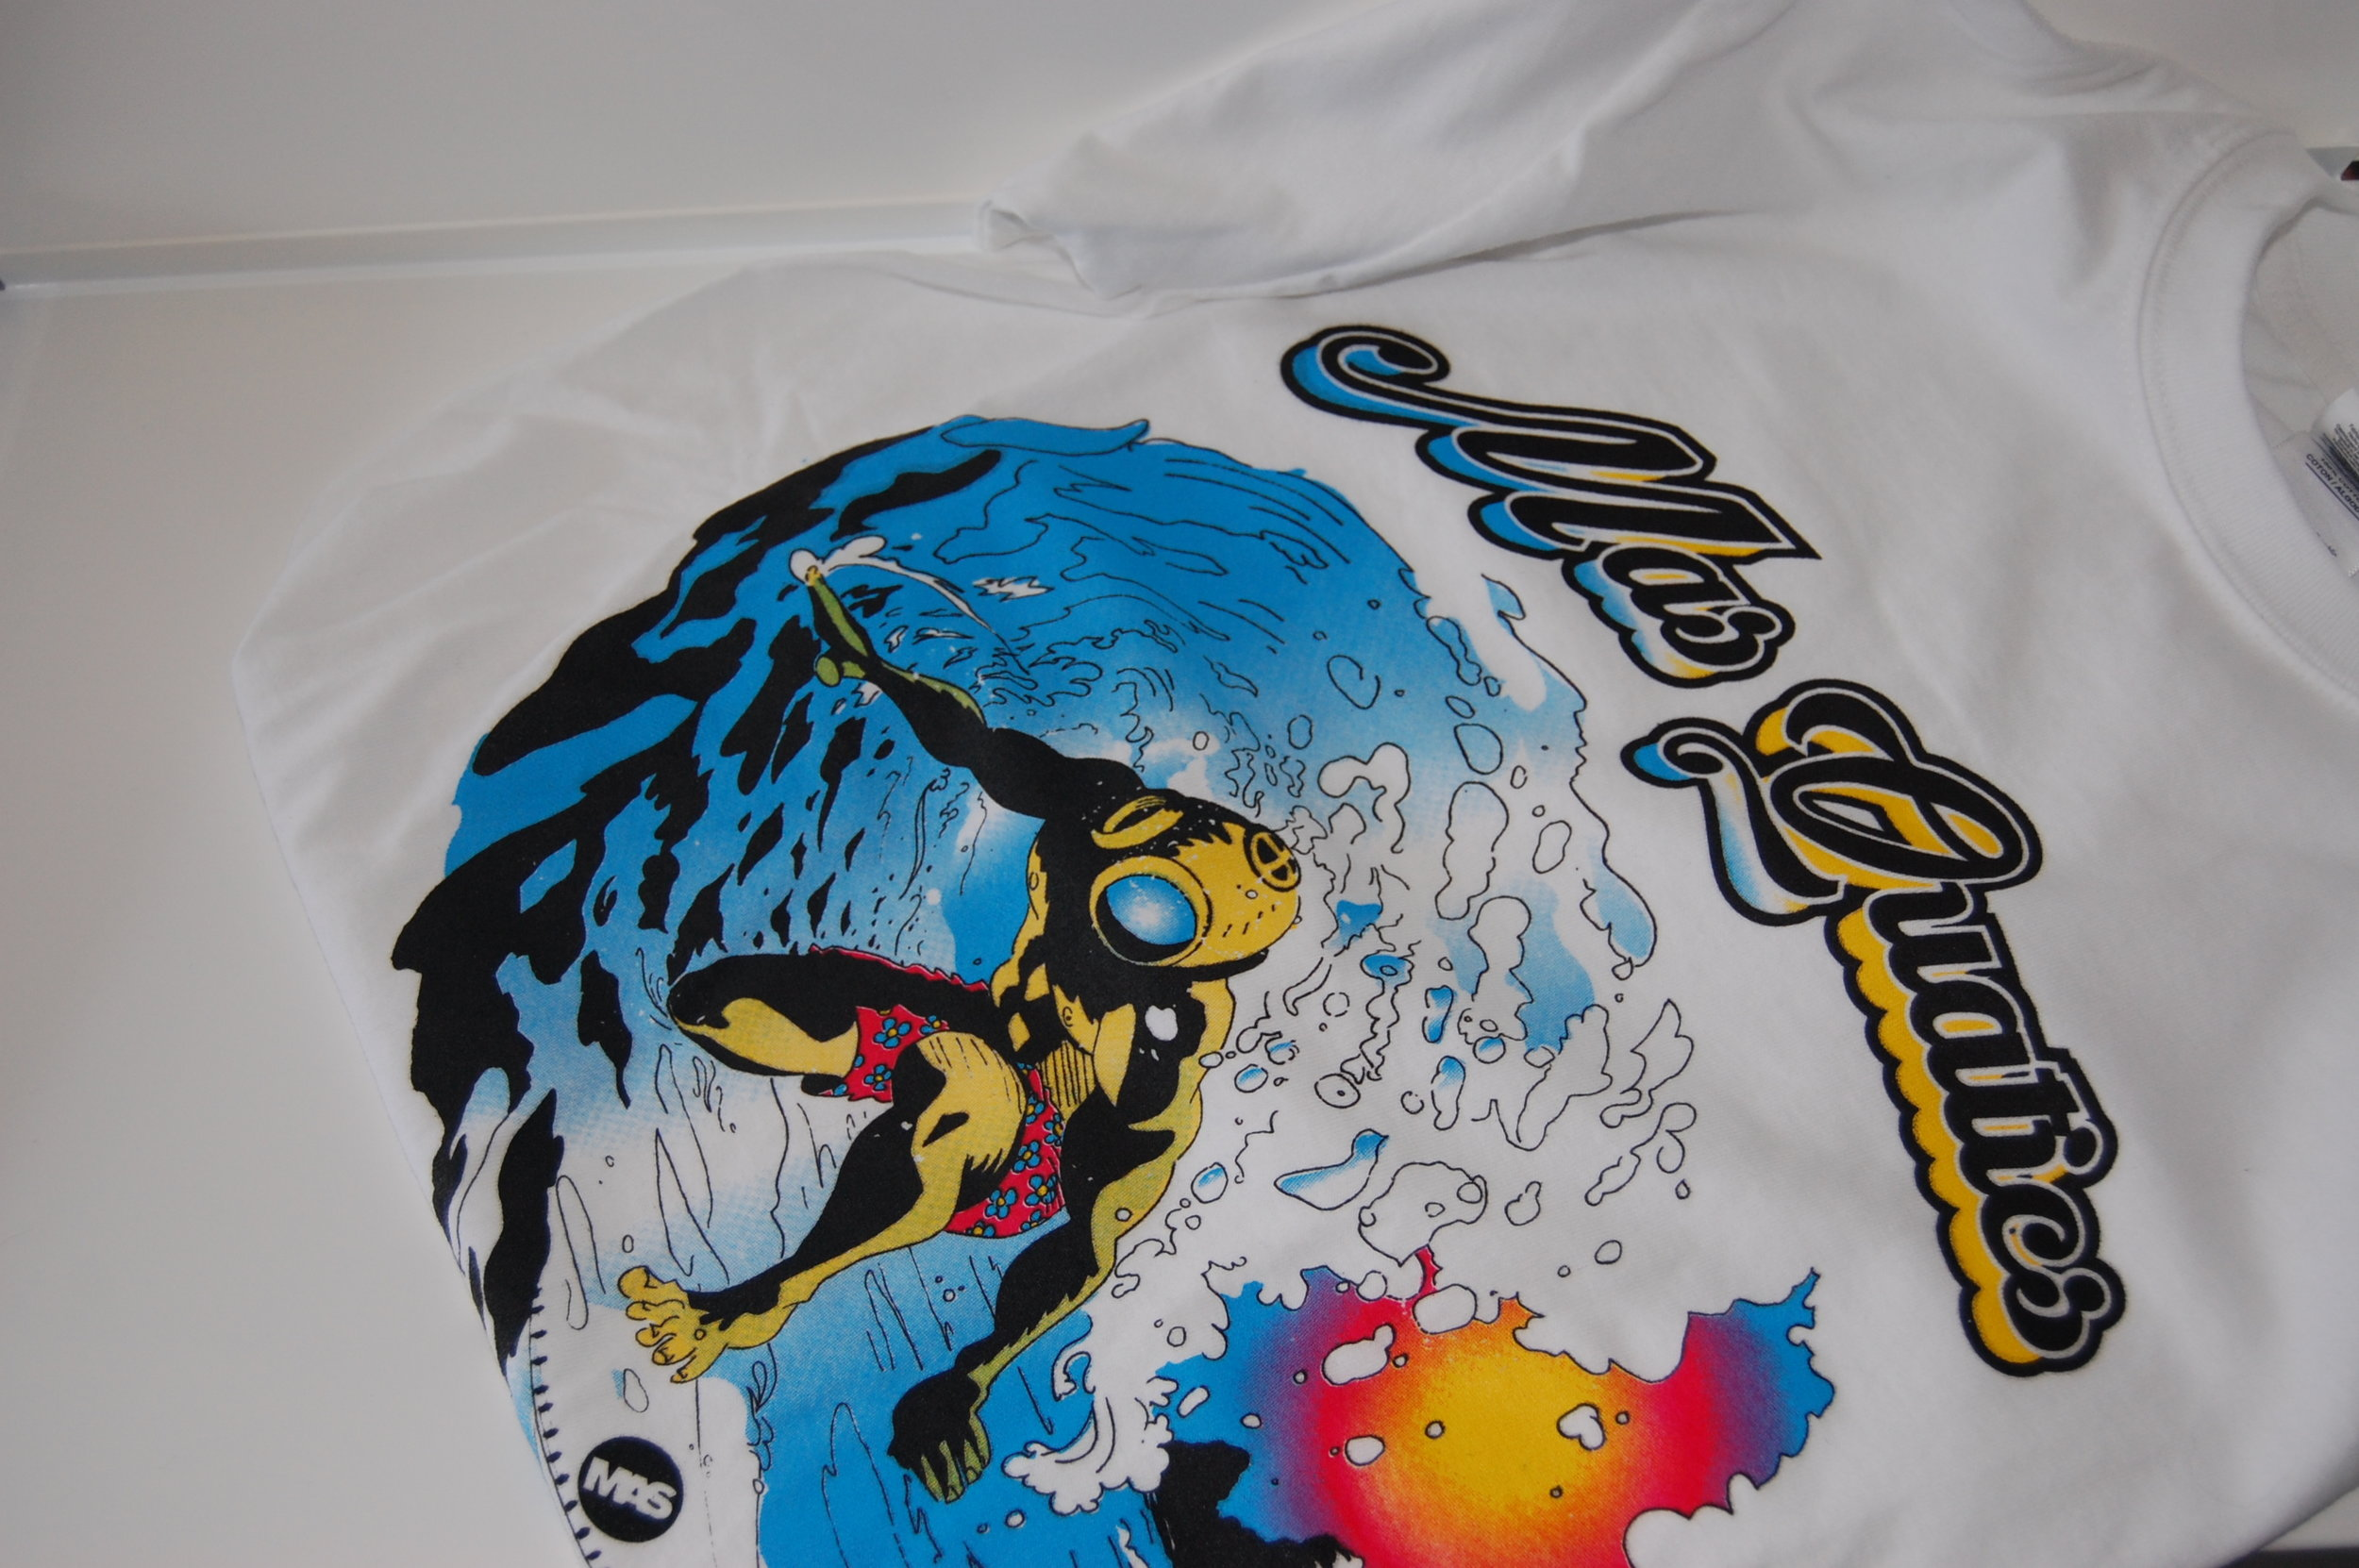 """MASQUATICS SHIRT   Our newest summer line """"Mas Quatics"""". This print was achieved using halftone overlays. In the center of the design, the 2-tone character, the Diver Surfer,inspired by 80's and 90's surf art styles and the art of Jim Phillips, and R. Crumb. The design began with a hand drawn illustration, followed by a live trace to digitally render it, opting for a live trace rather than a digital recreation to preserve a hand-drawn feel."""